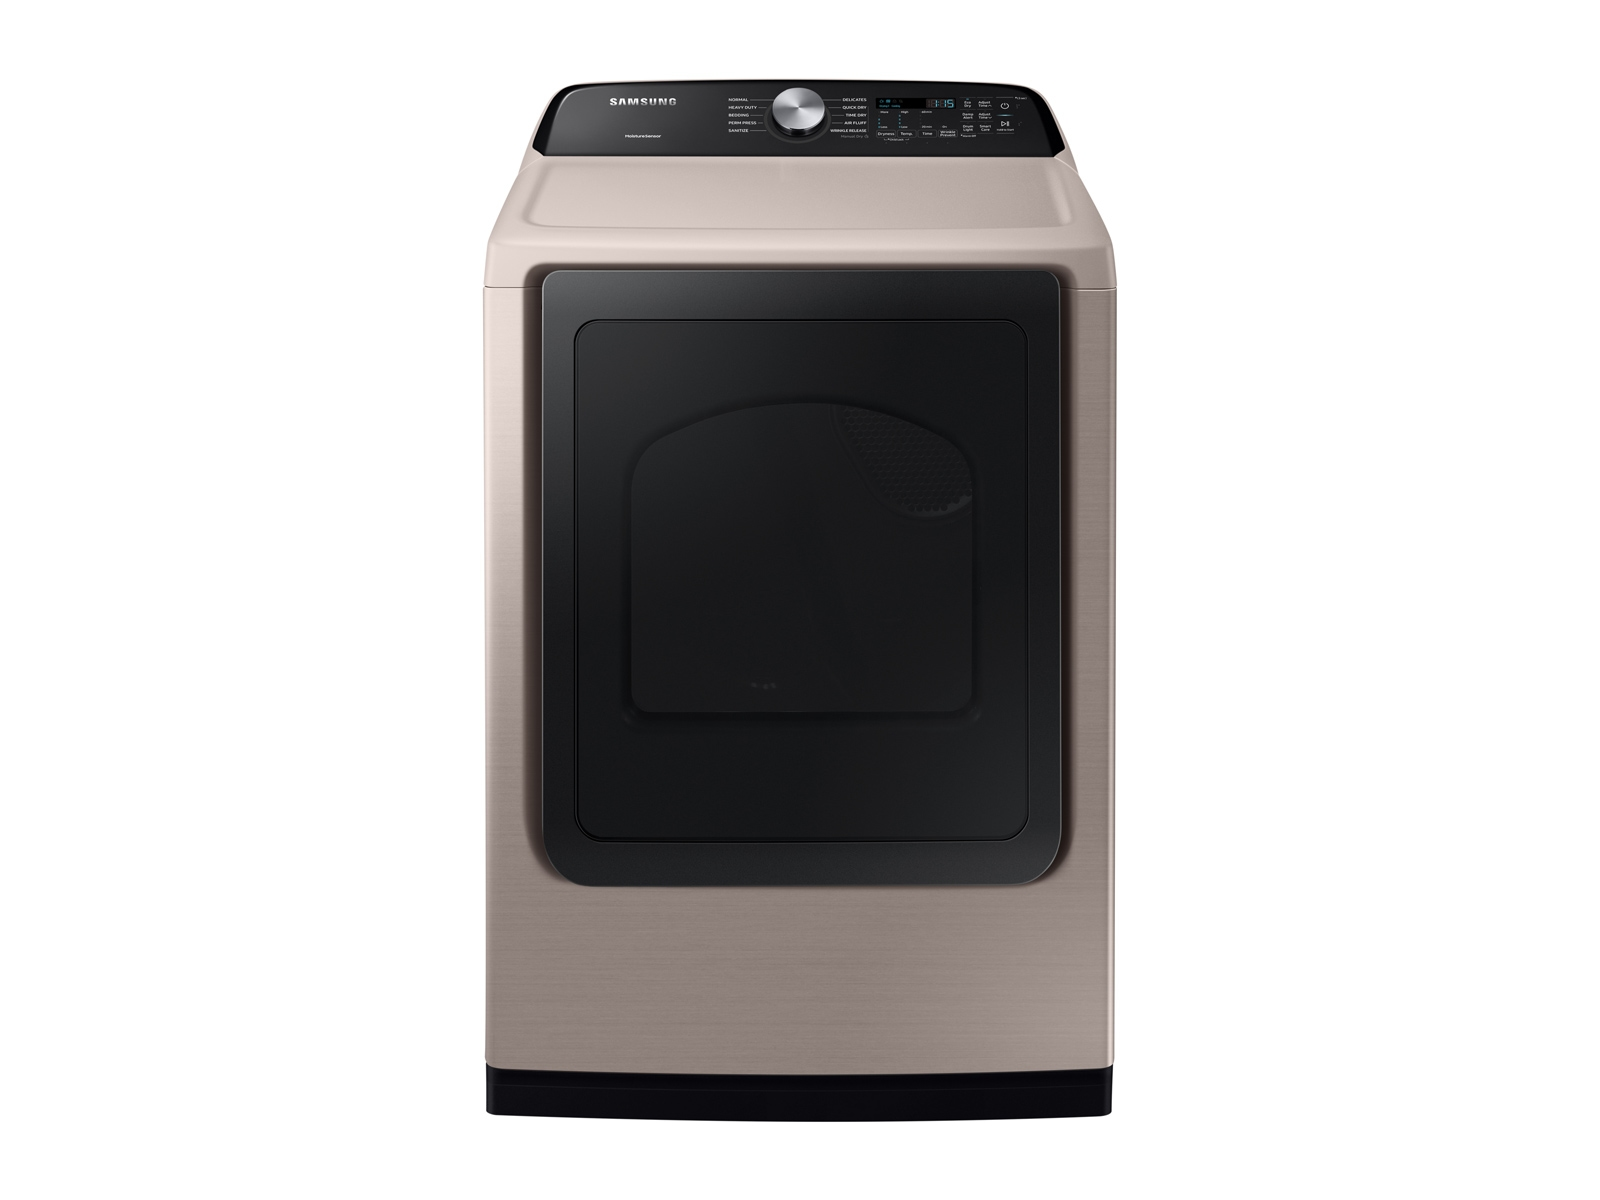 Samsung 7.4 cu. ft. Electric Dryer with Sensor Dry in Champagne